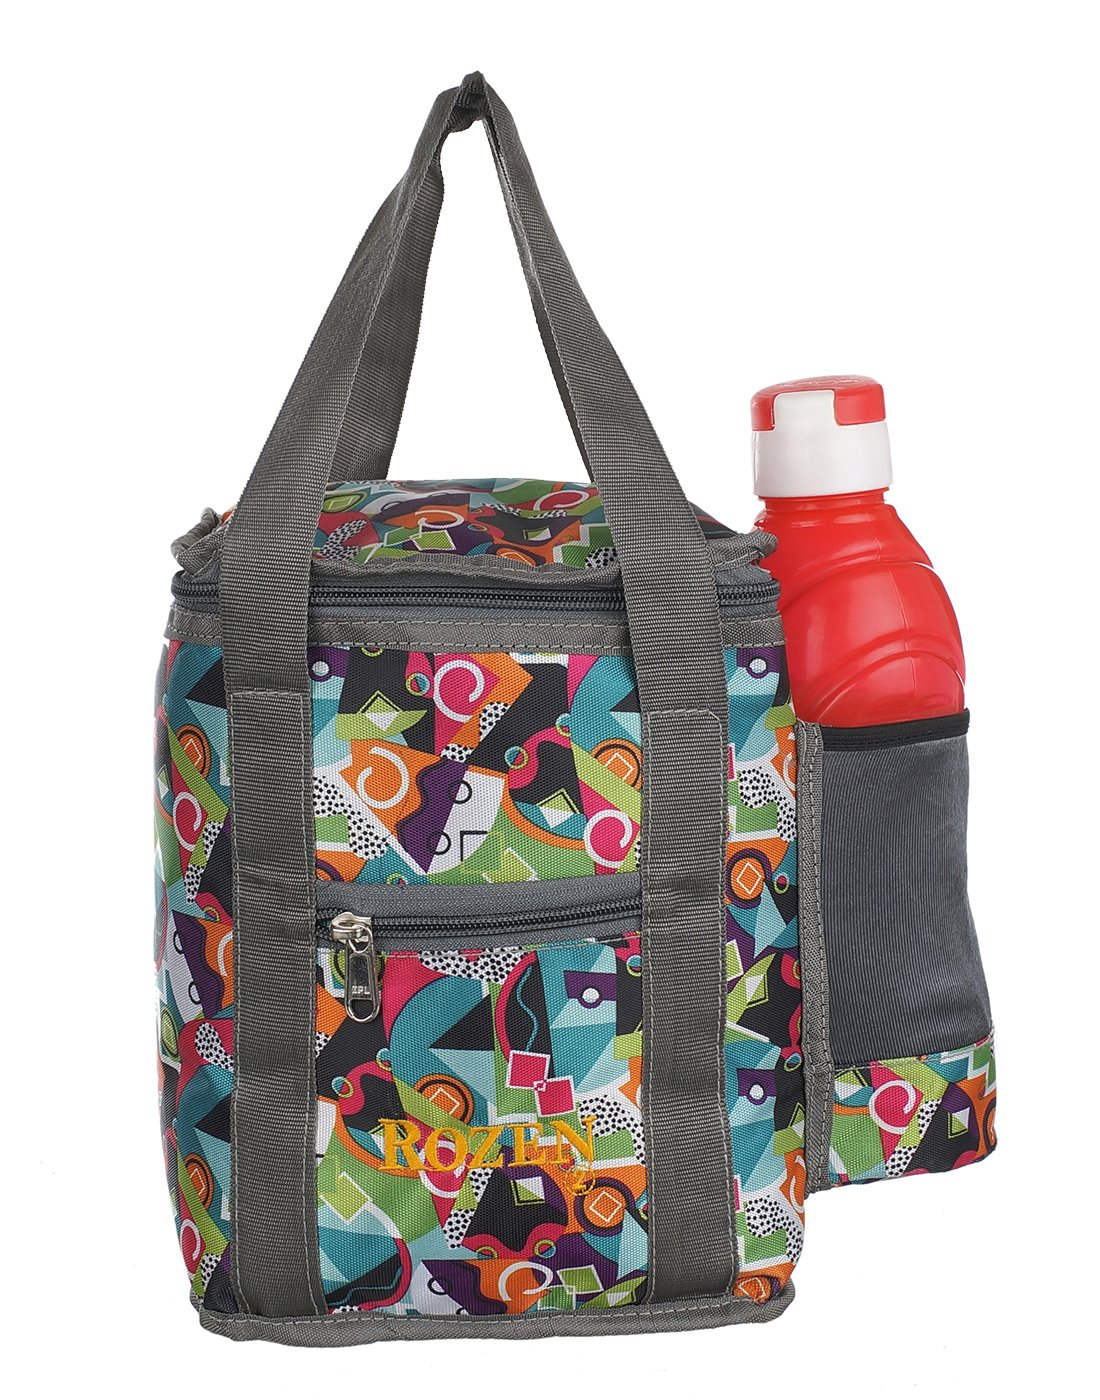 Rozen Muitifunction Lunch Tiffin Bag (Multicolor)